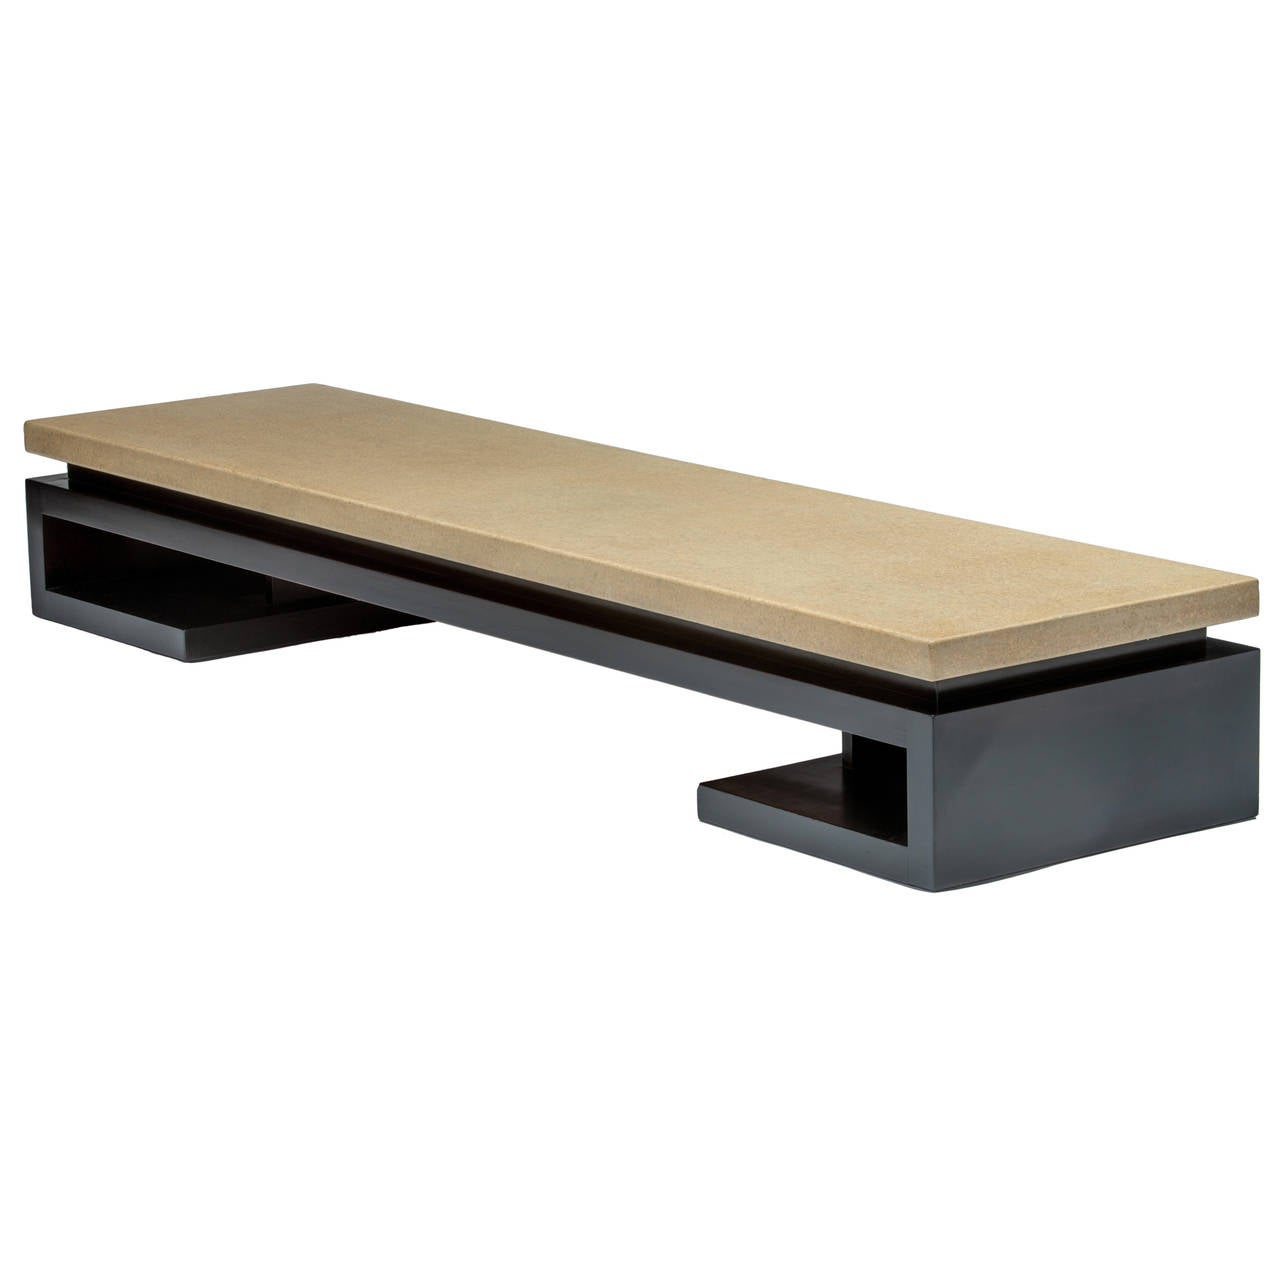 Paul frankl coffee table or bench at 1stdibs for Modern coffee table